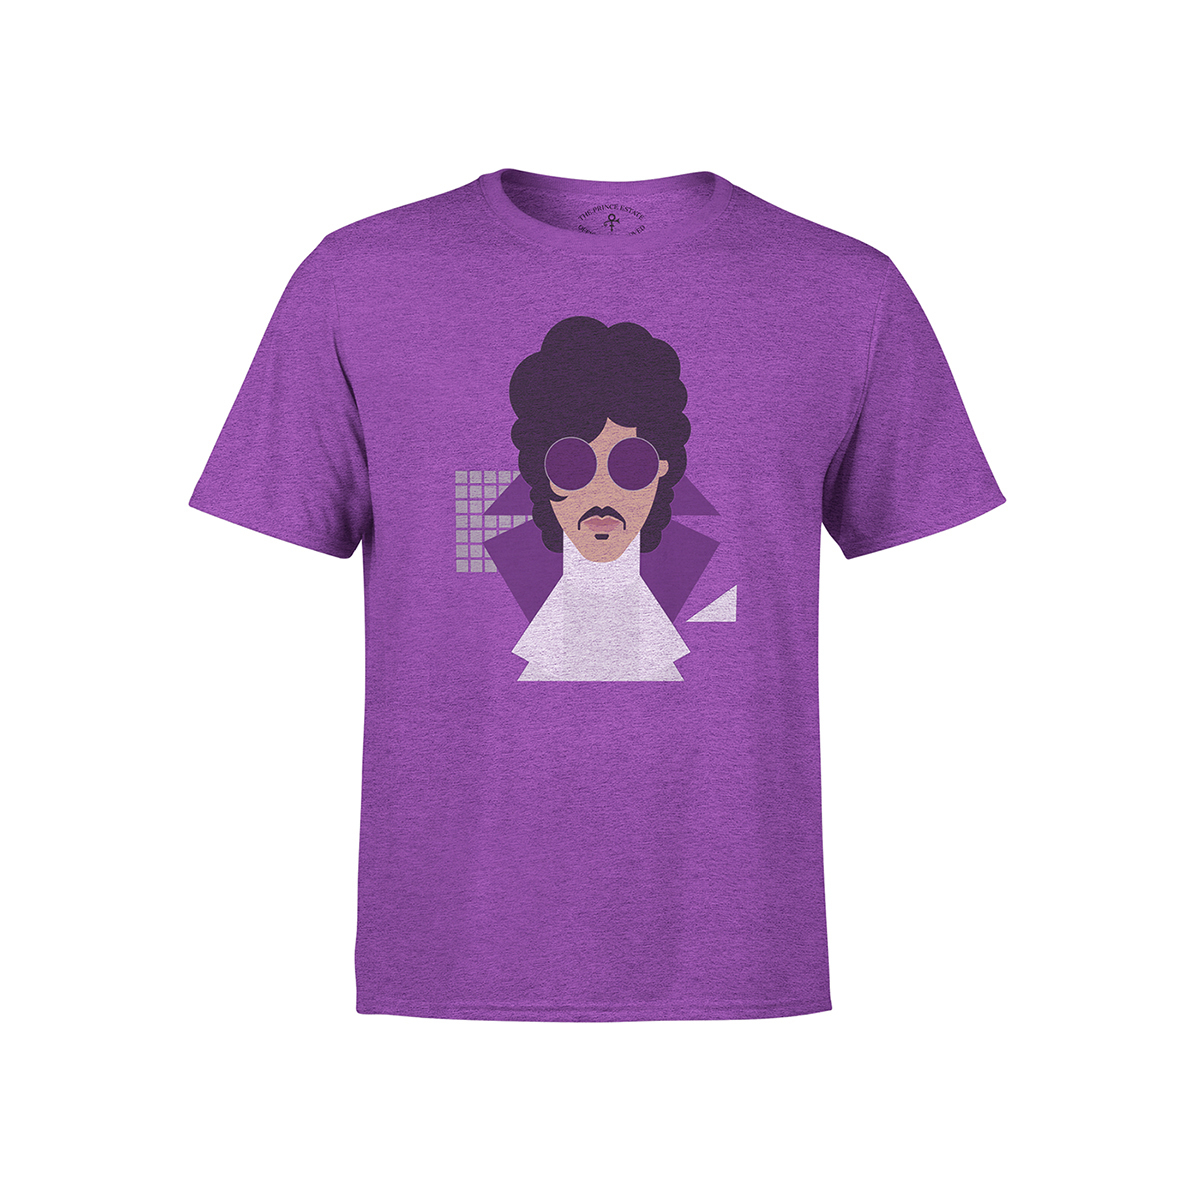 When Doves Cry Kids' T-shirt